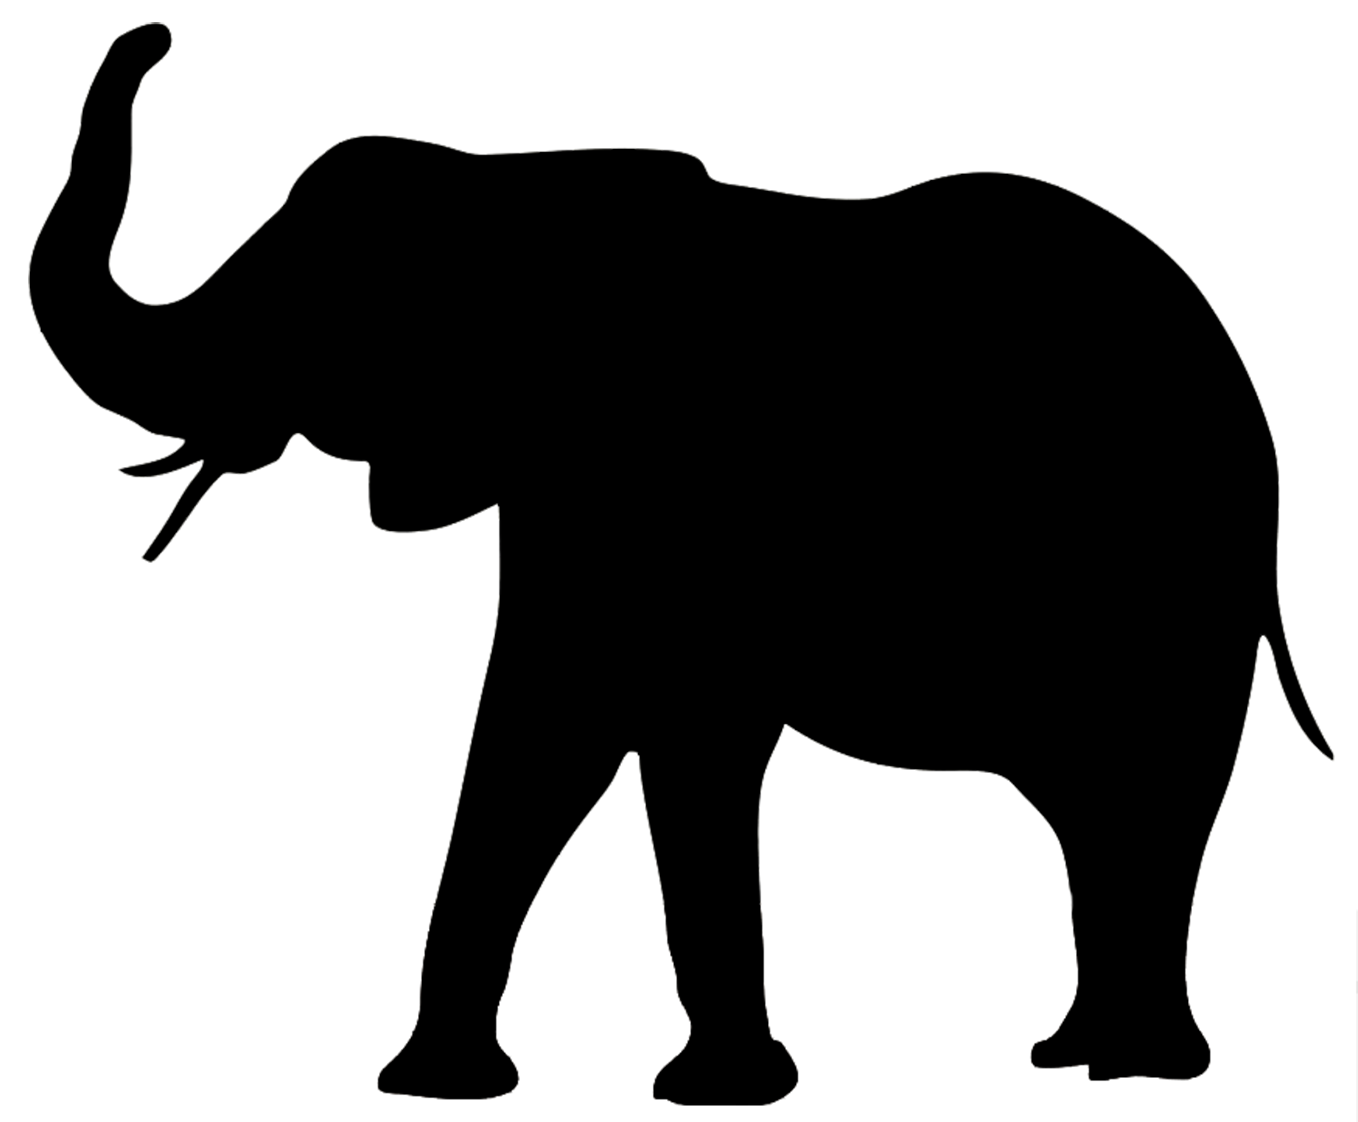 Brown silhouette of elephant JPEG Elephant black white silhouette PNG